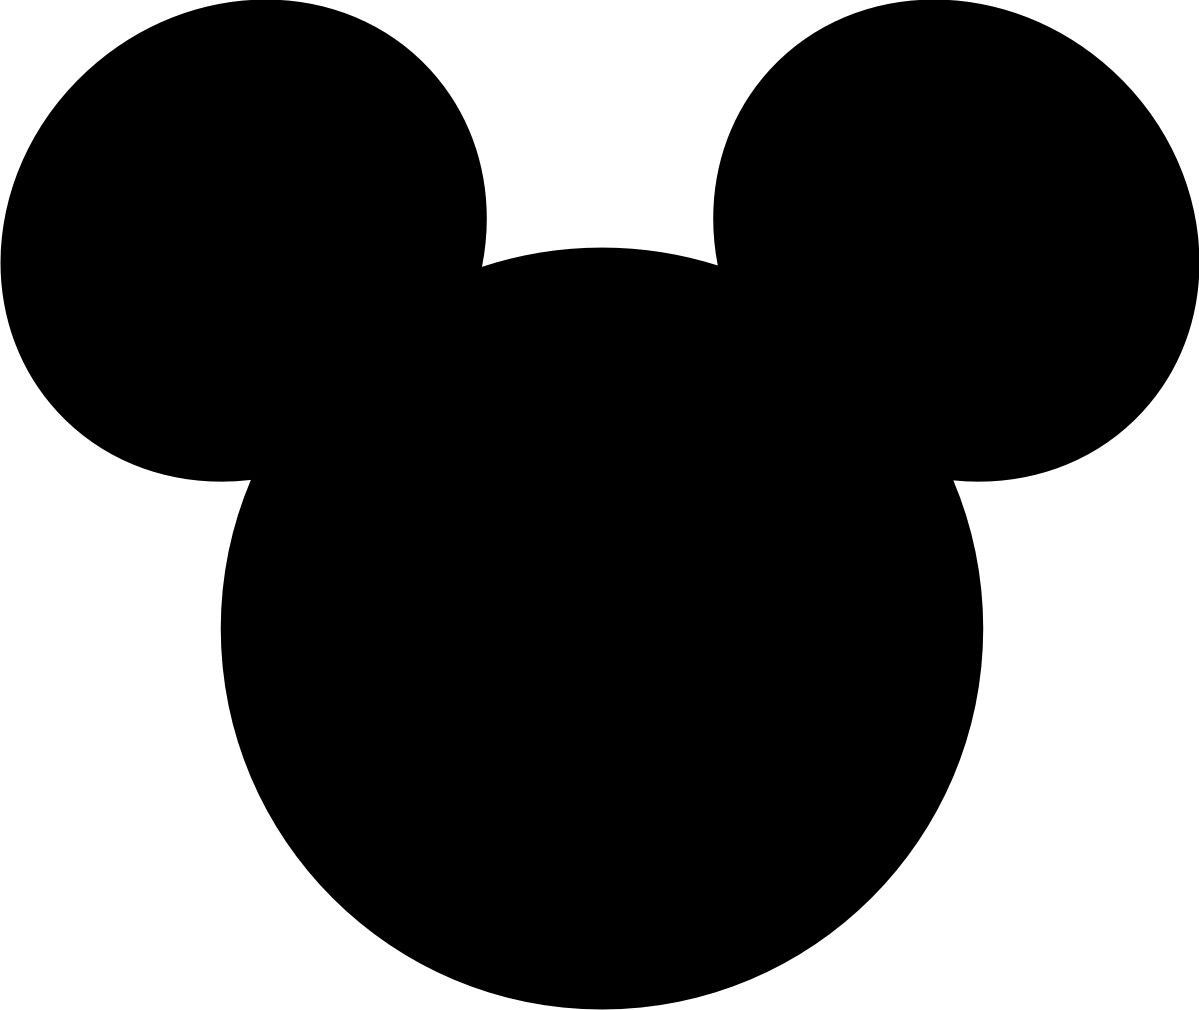 Minnie Mouse Silhouette Printable 30 Within Minnie Mouse Head Template Minnie Mouse Silhouette Mickey Mouse Printables Mickey Mouse Silhouette